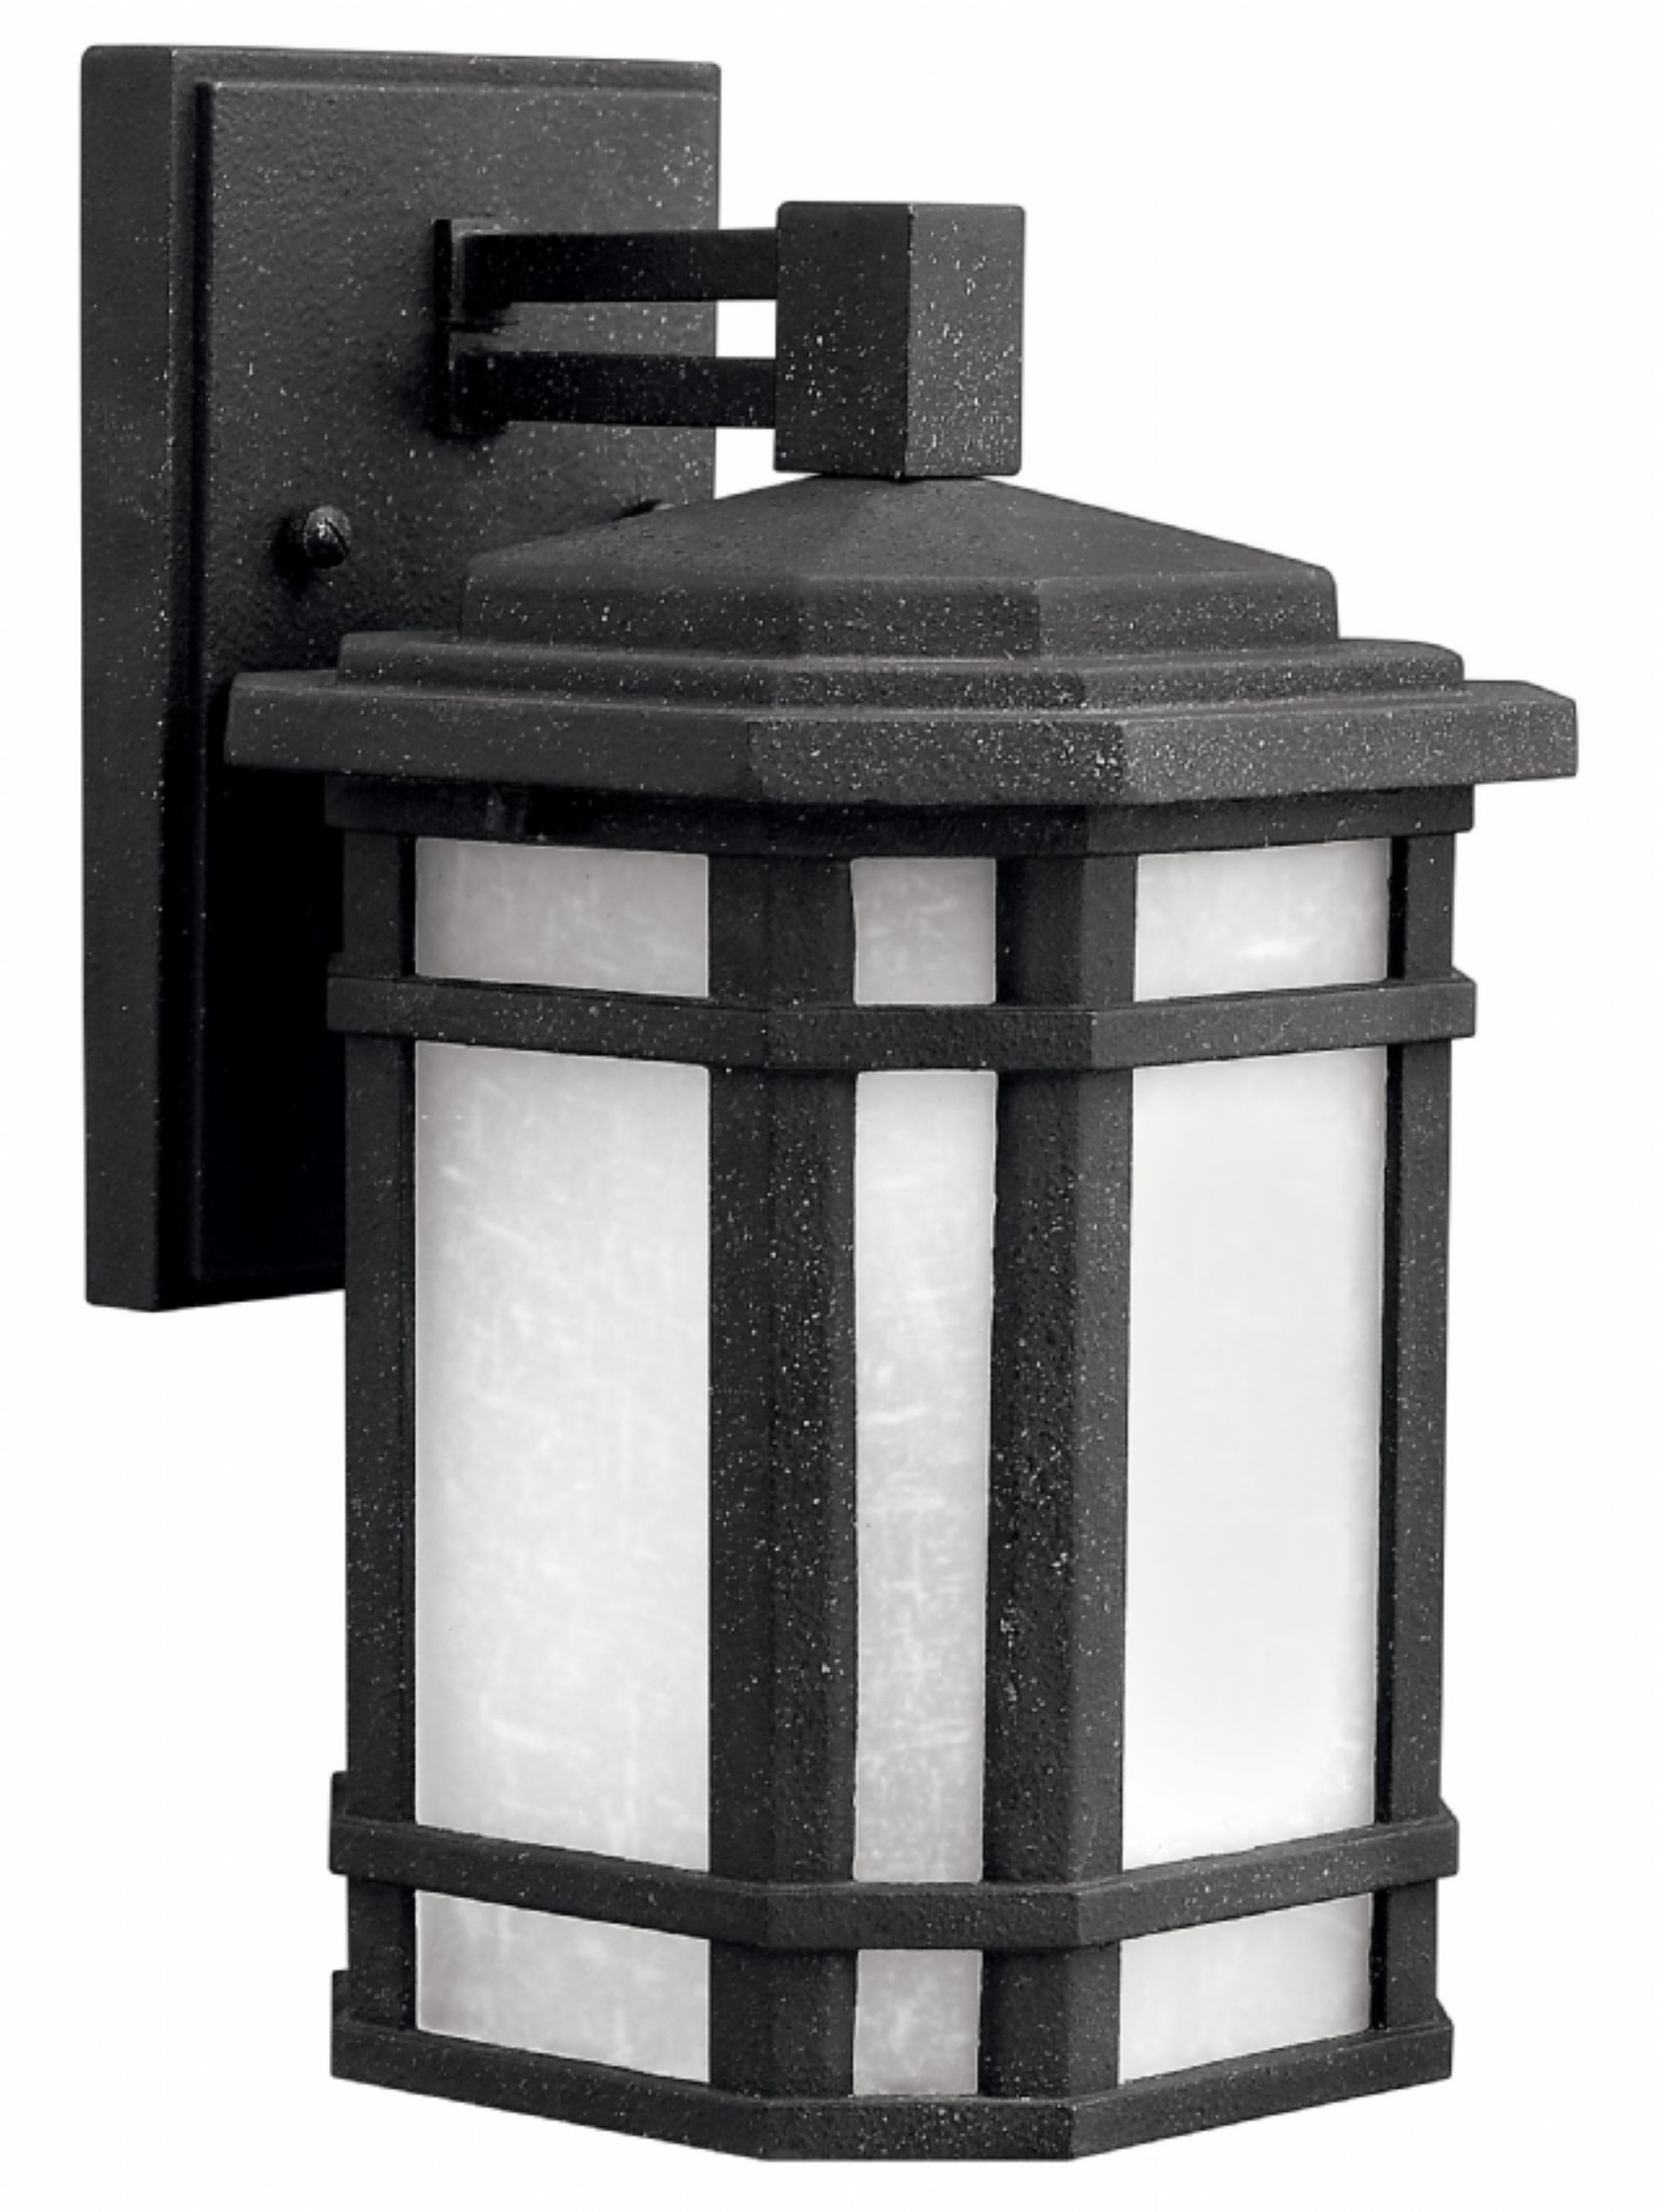 Newest Outdoor Lighting Japanese Lanterns With Vintage Black Cherry Creek > Exterior Wall Mount (View 13 of 20)